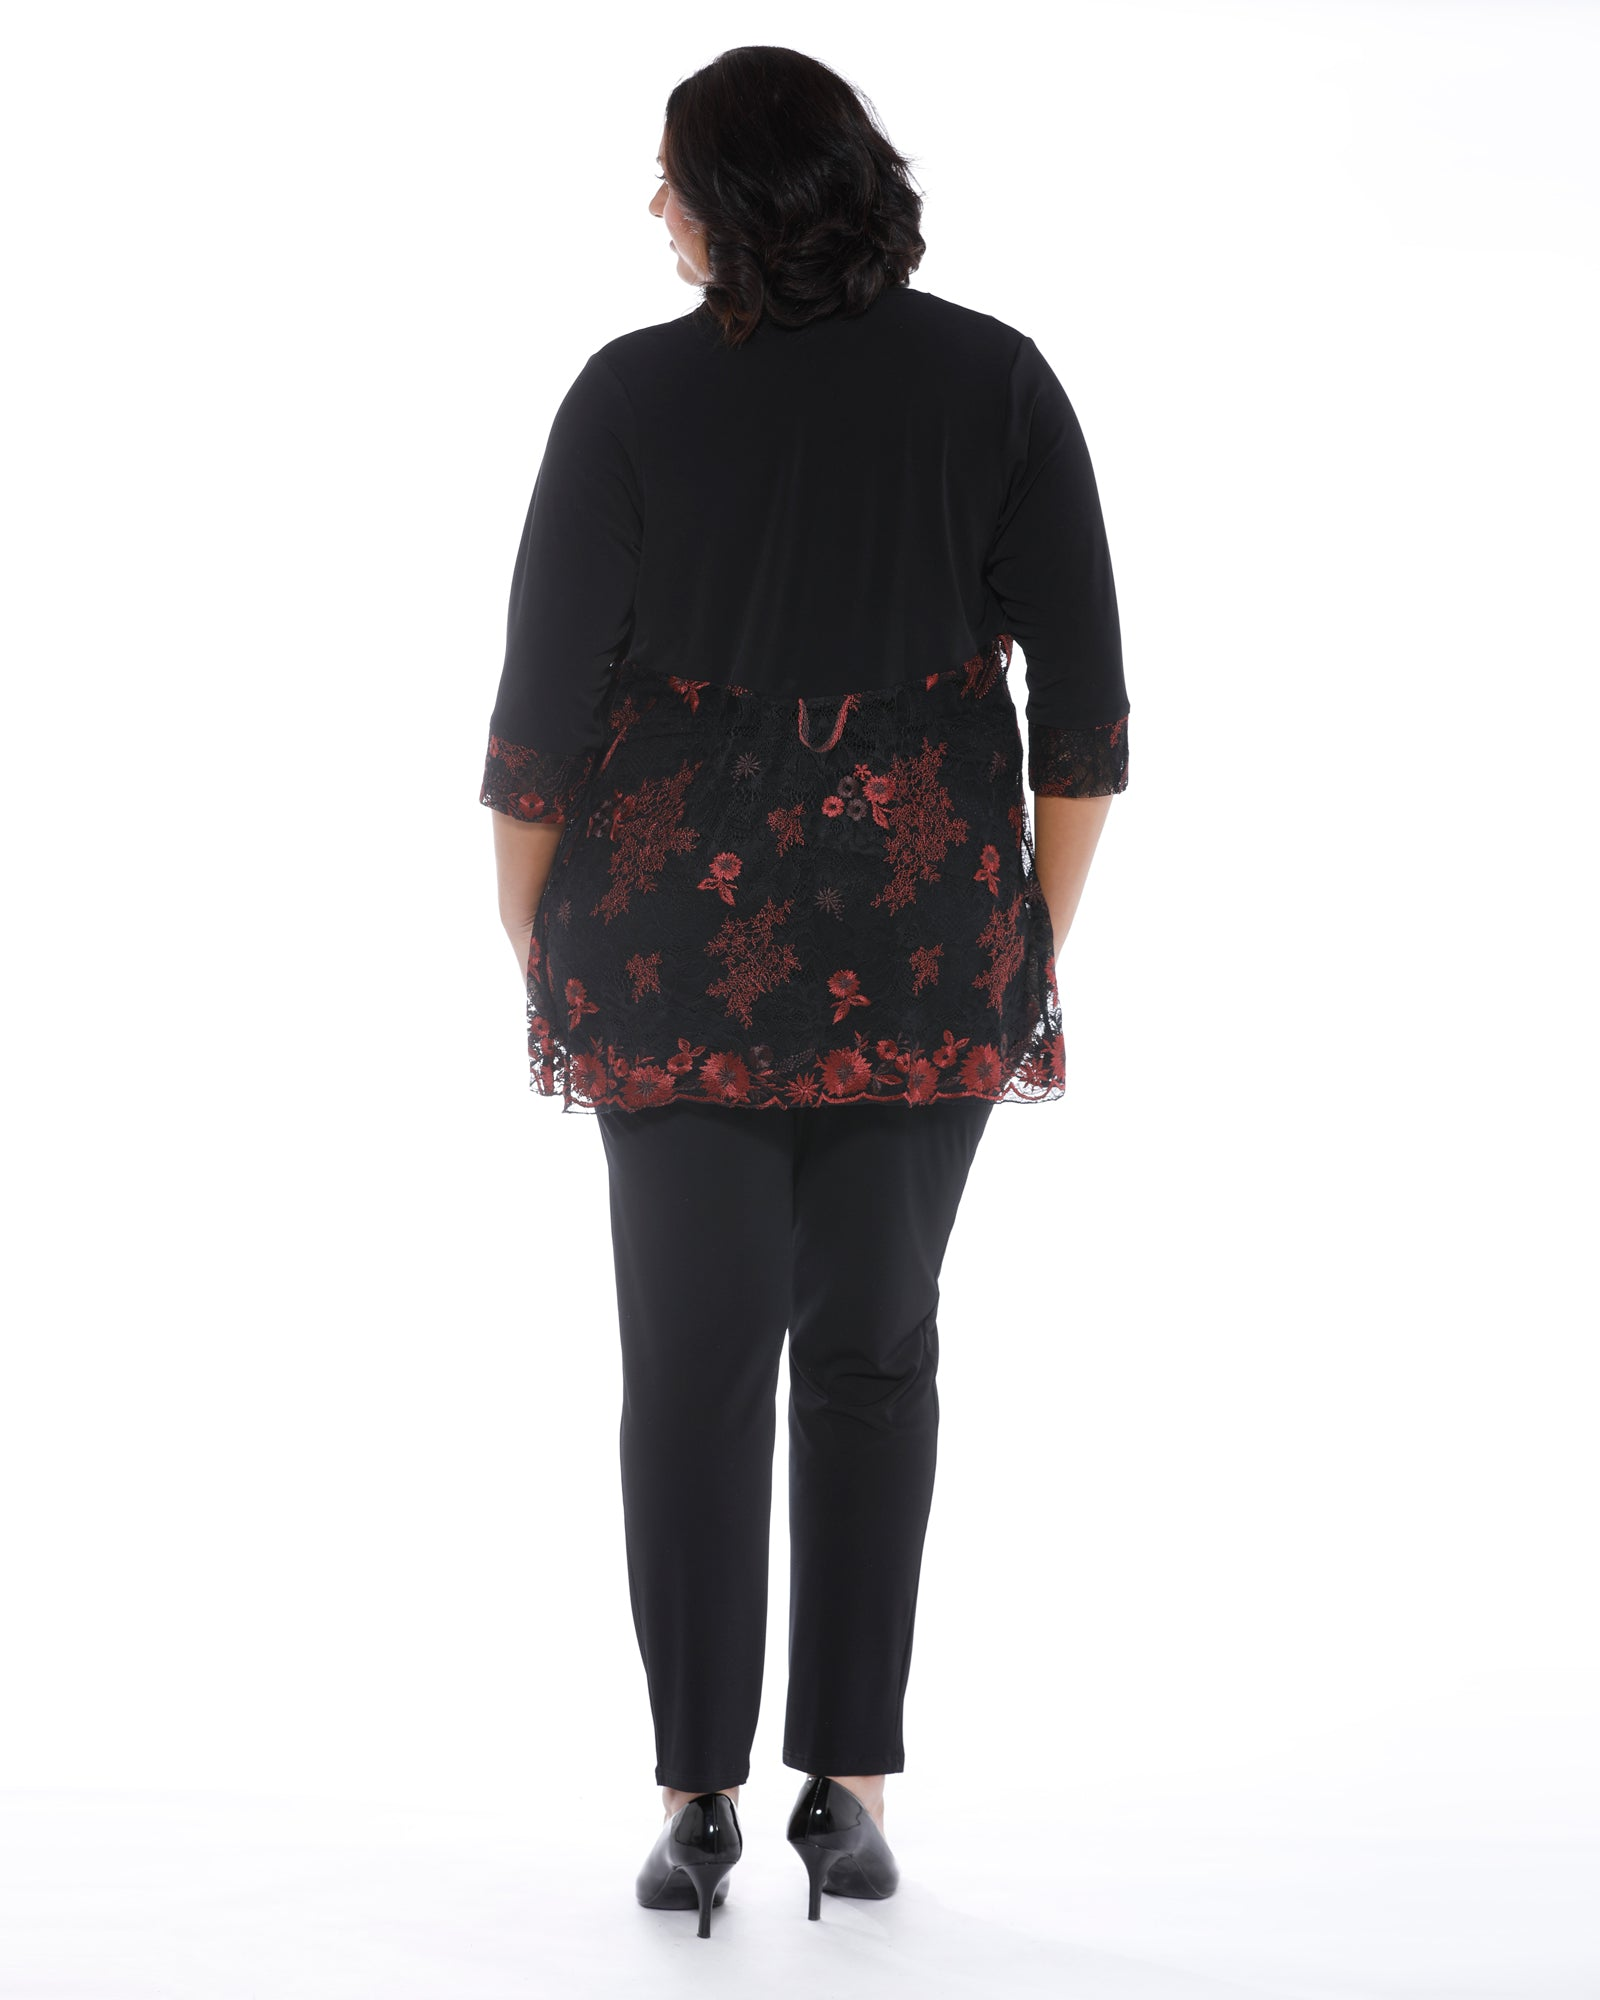 Natalie Embroidered Shrug- Red Last Size 16